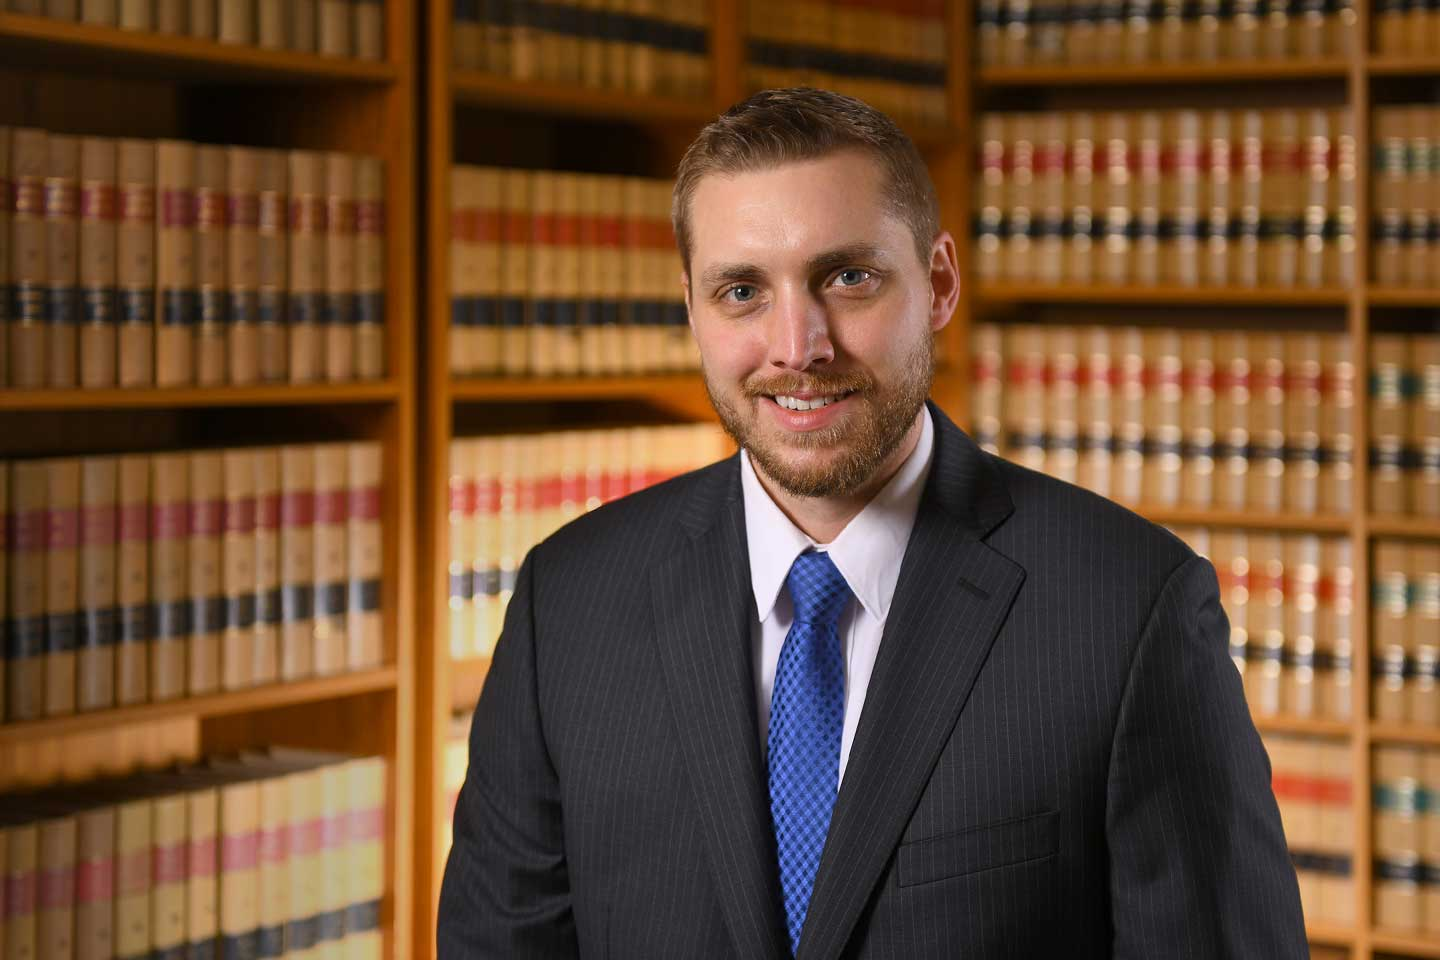 Mannix Law Firm - Salem, Oregon Business Attorneys - Connor Harrington